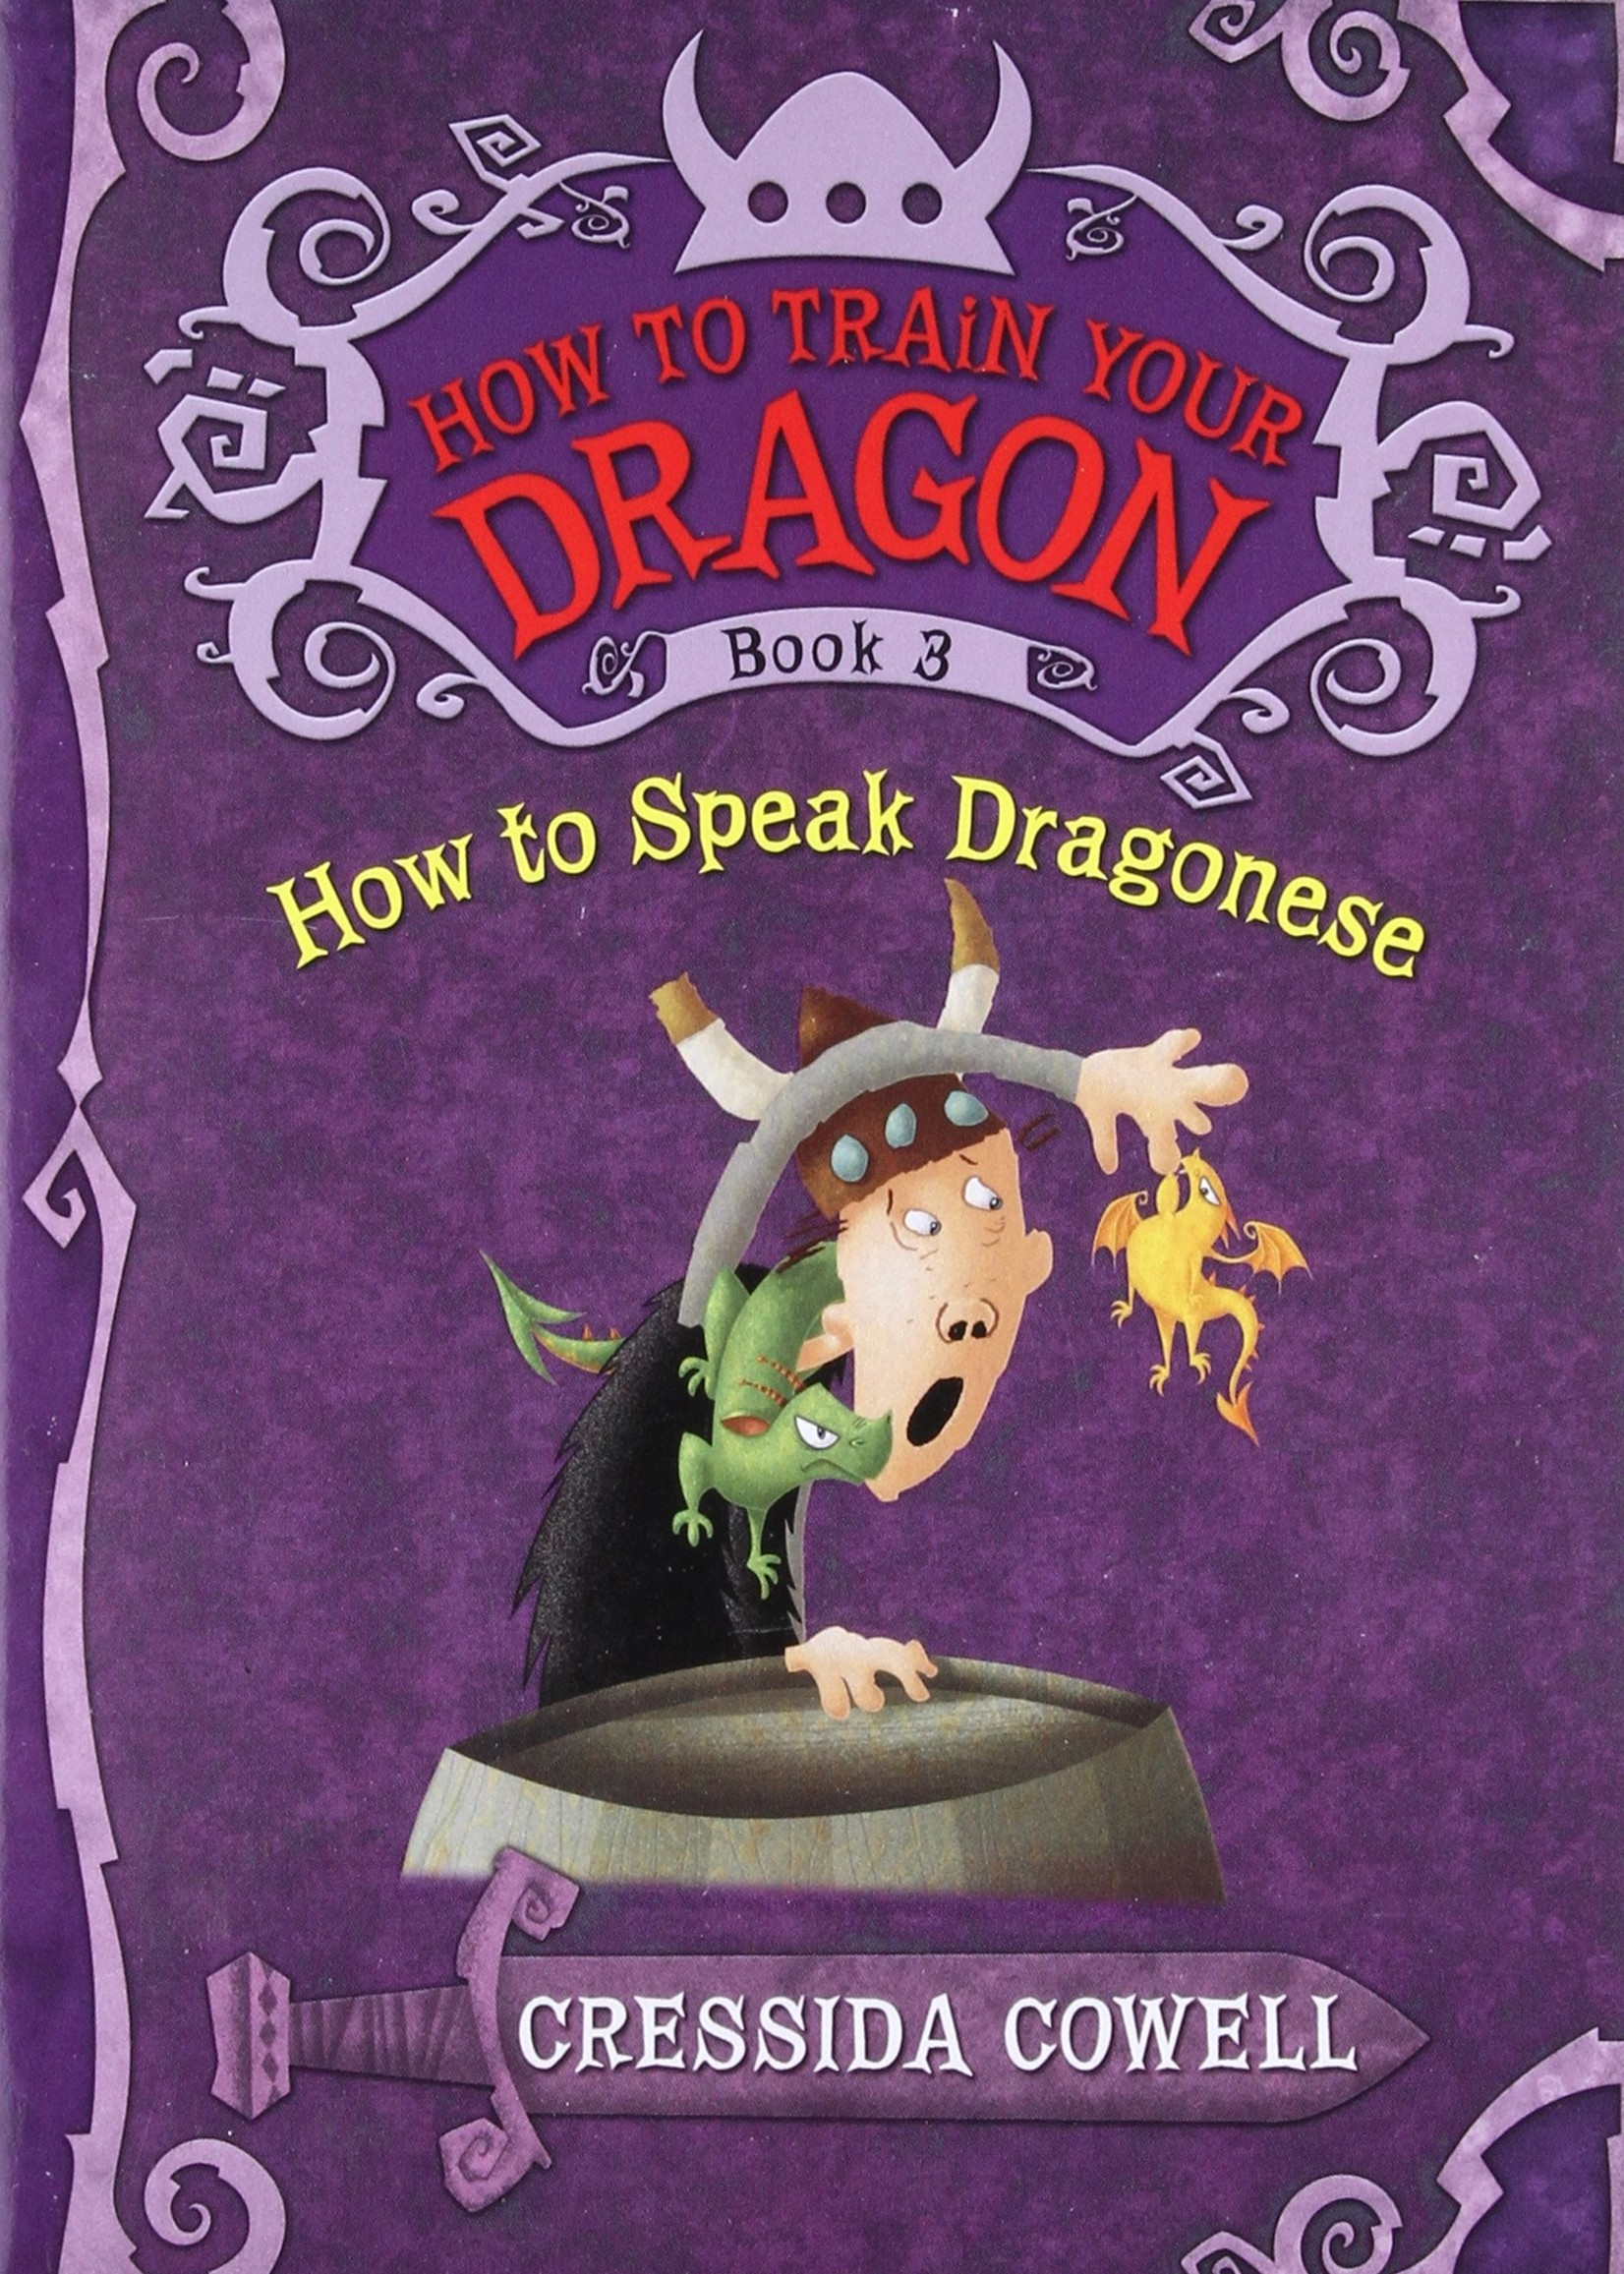 How to Train Your Dragon #03, How to Speak Dragonese - Paperback